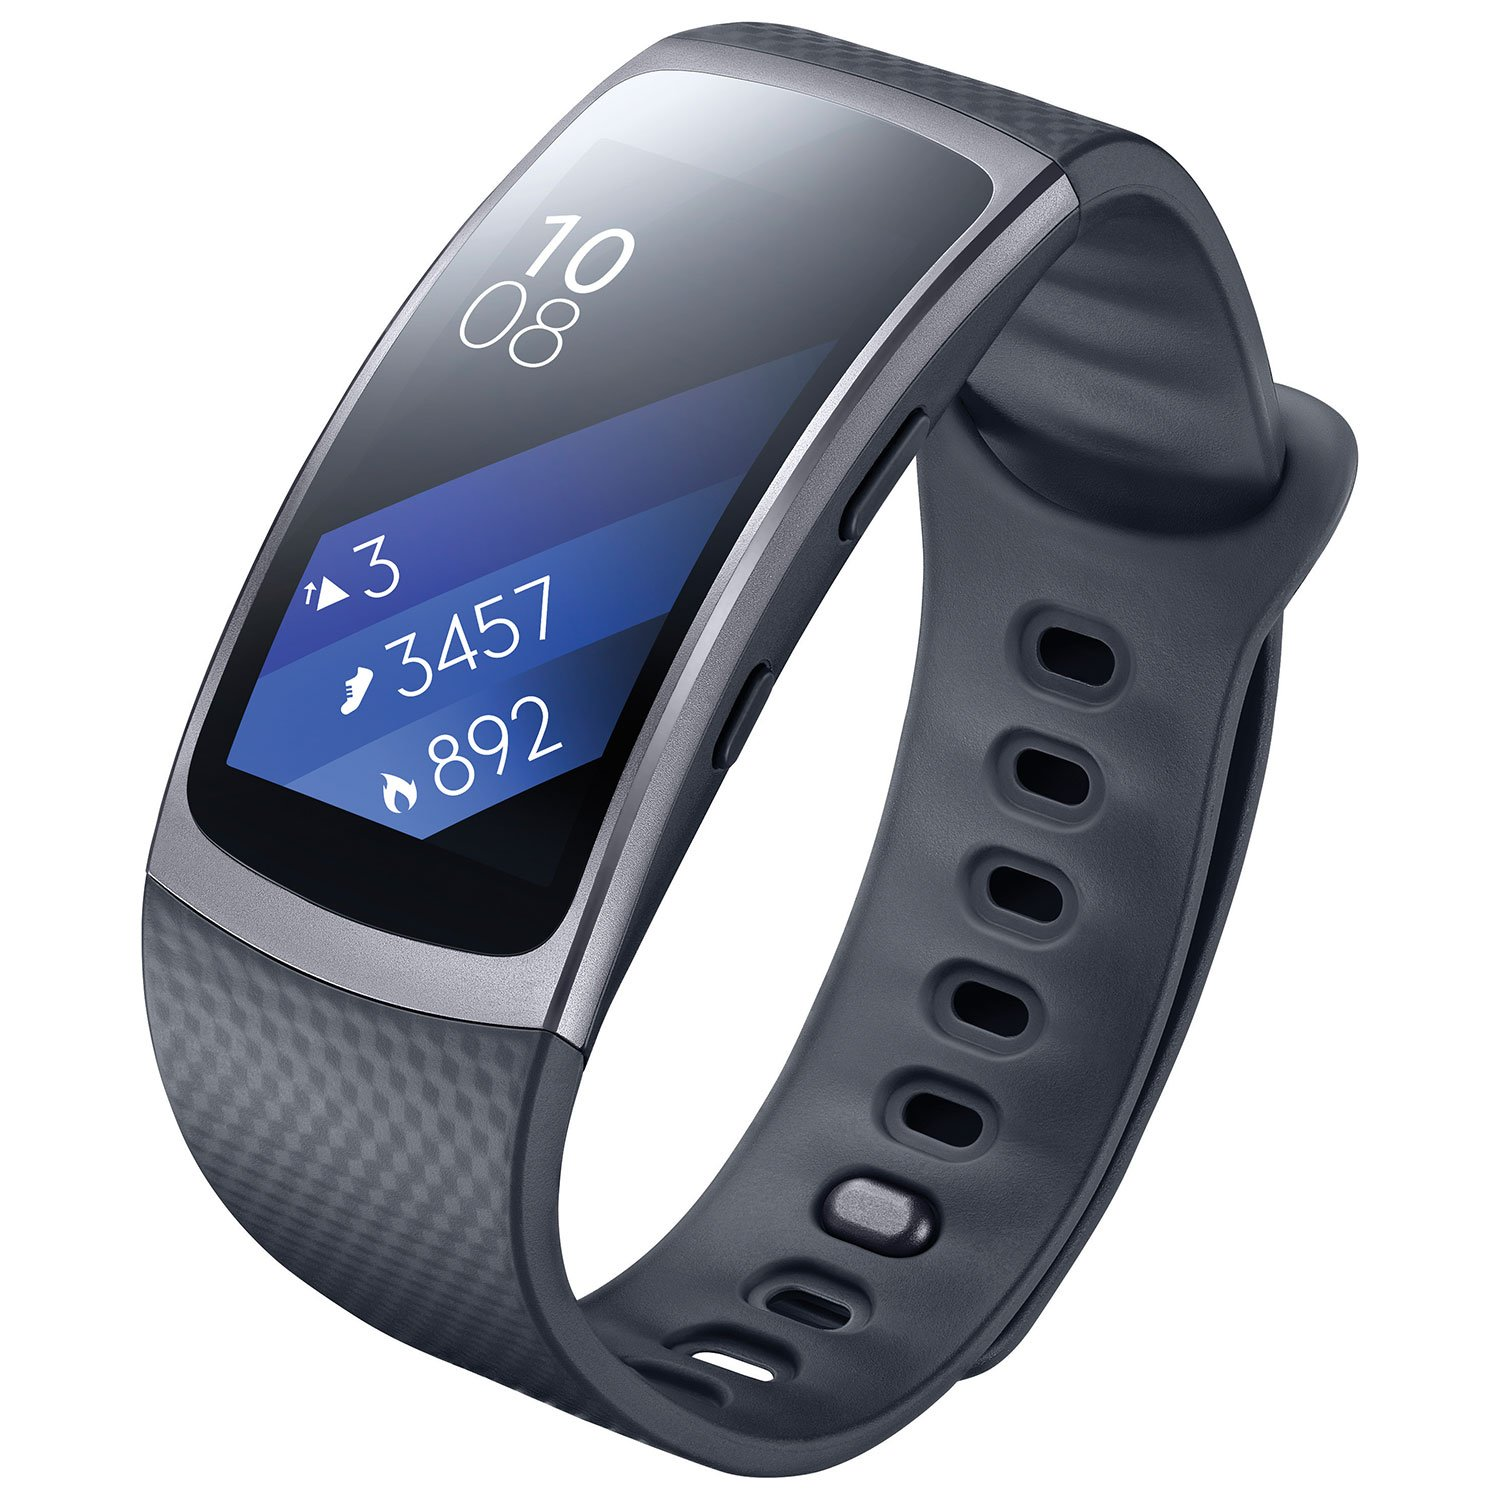 Samsung Gear Fit 2 SM-R360 - Smartwatch de 1.5 (4 GB, 1 GHz, 512 MB RAM, Tizen, talla L), color negro [Asia Version]